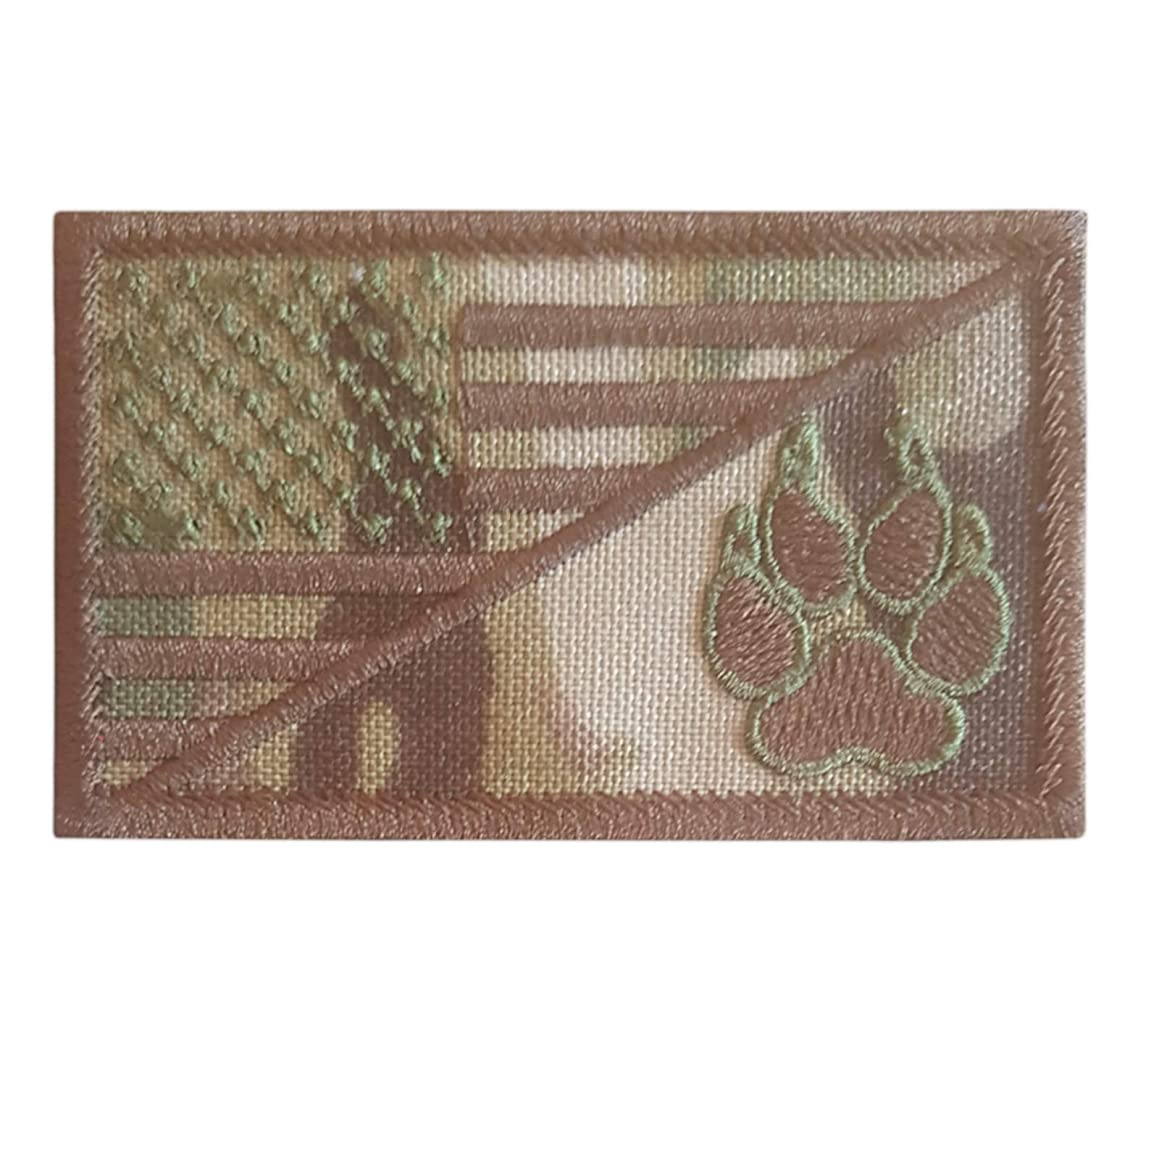 LEGEEON Multicam USA American Flag K-9 Dog Handler Morale Tactical Embroidery Hook-and-Loop Patch